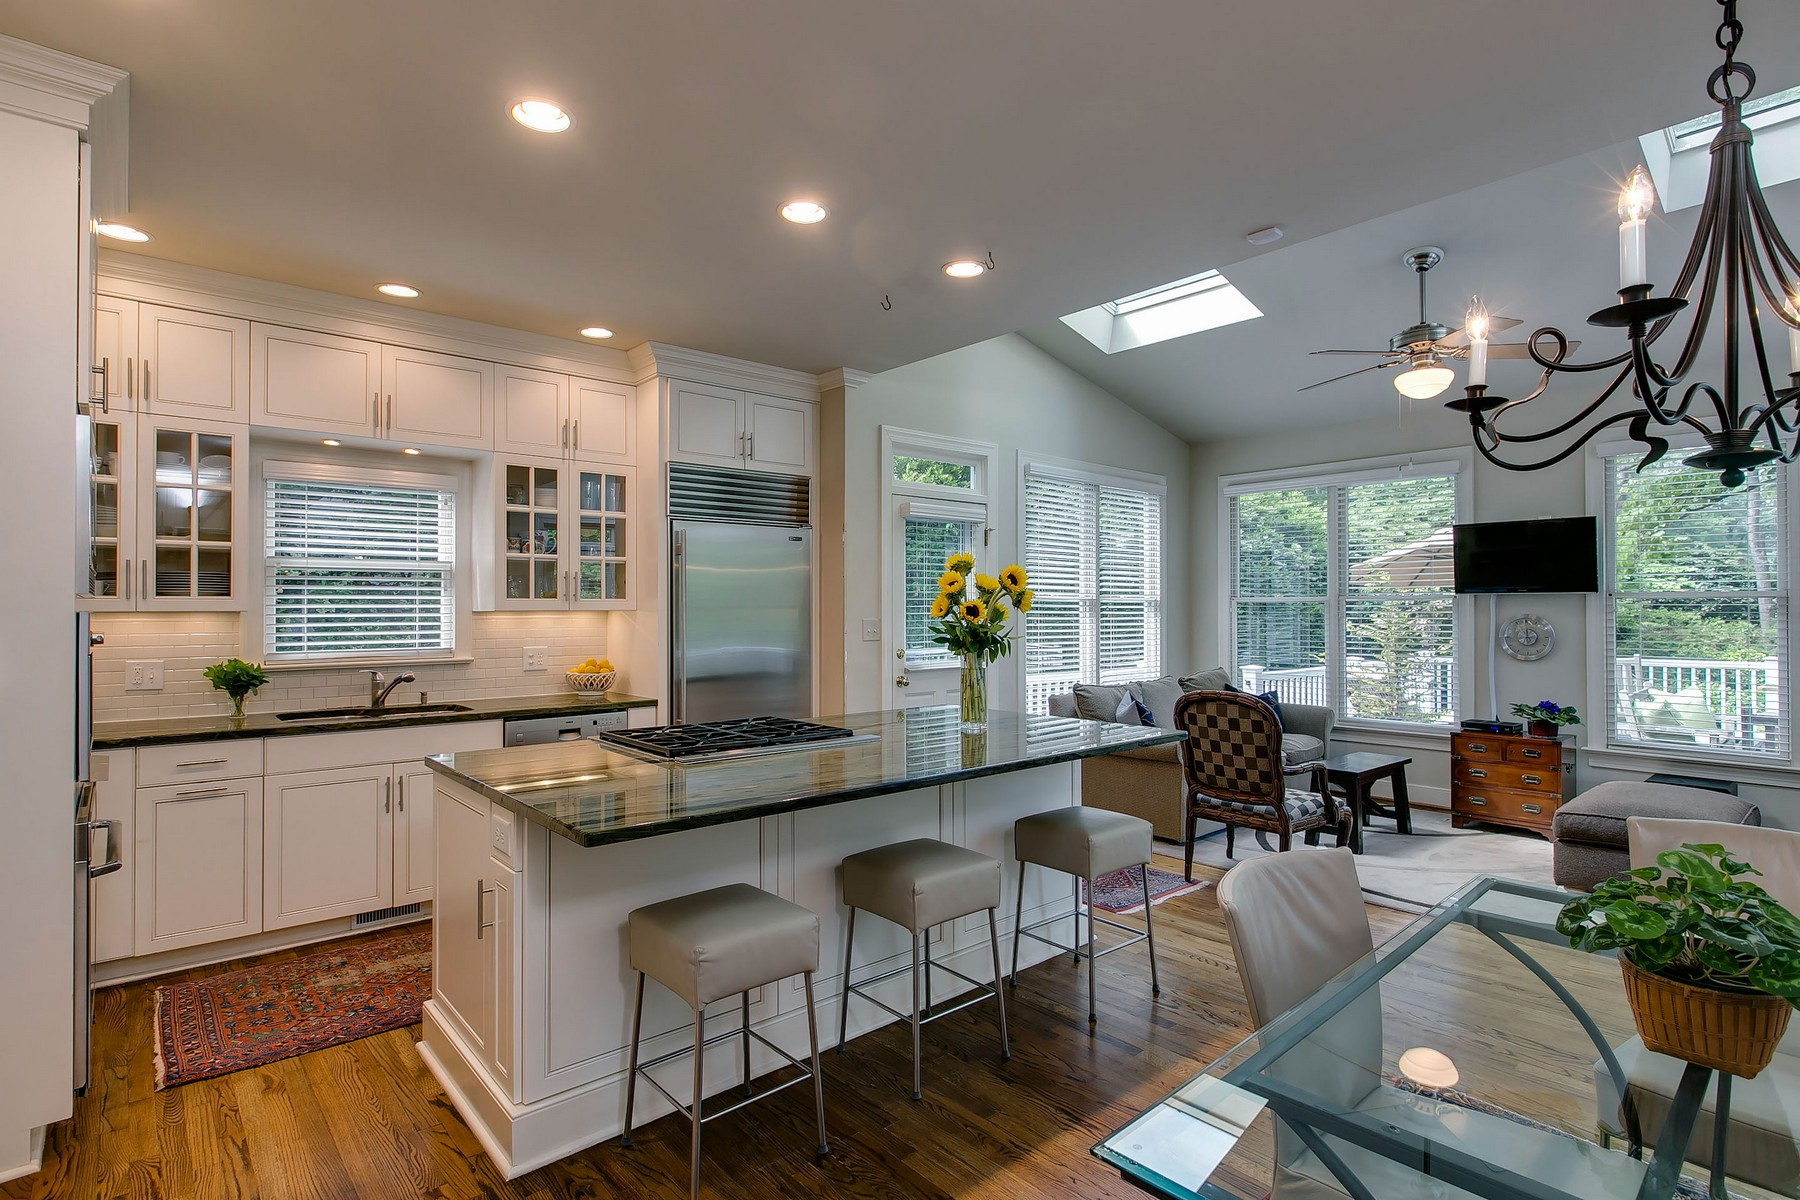 Additional photo for property listing at 2519 Wake Drive  Raleigh, Carolina Del Norte 27608 Estados Unidos